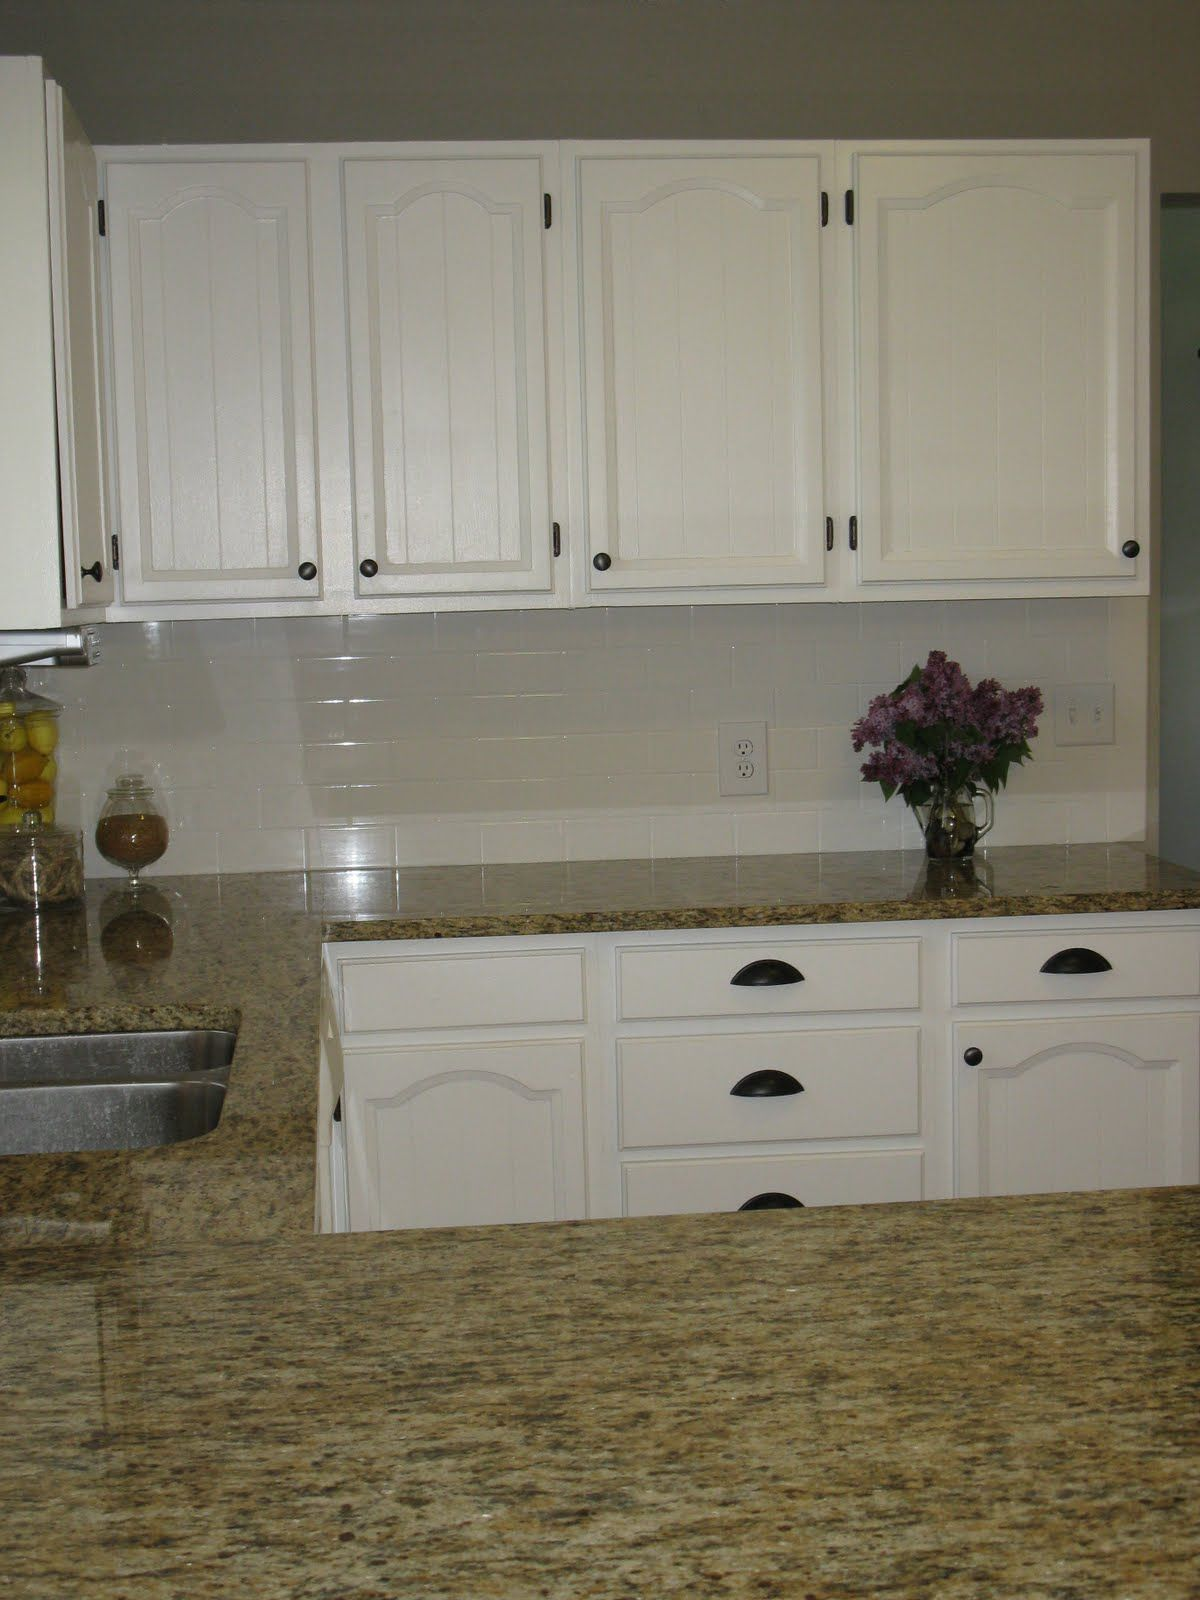 White Cabinets With Oil Rubbed Bronze Hardware And Hinges.